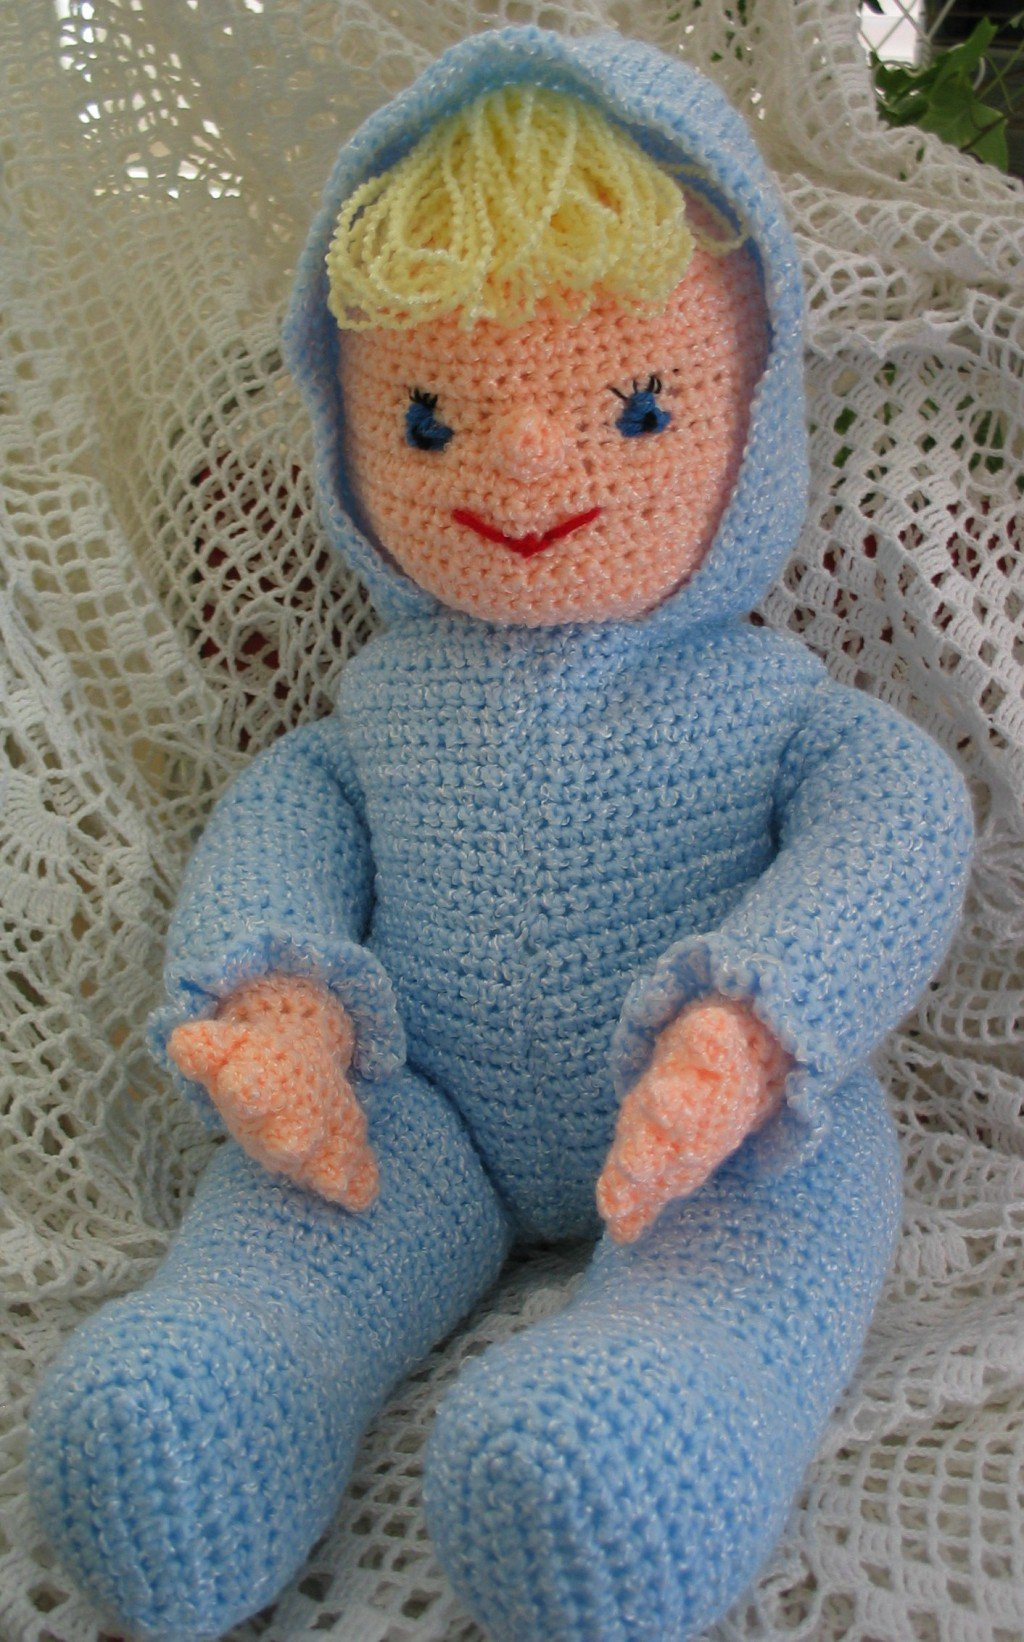 Free Crochet Doll Patterns Lovely Finding Free Crochet Patterns Crocheted Dolls Of Great 49 Ideas Free Crochet Doll Patterns